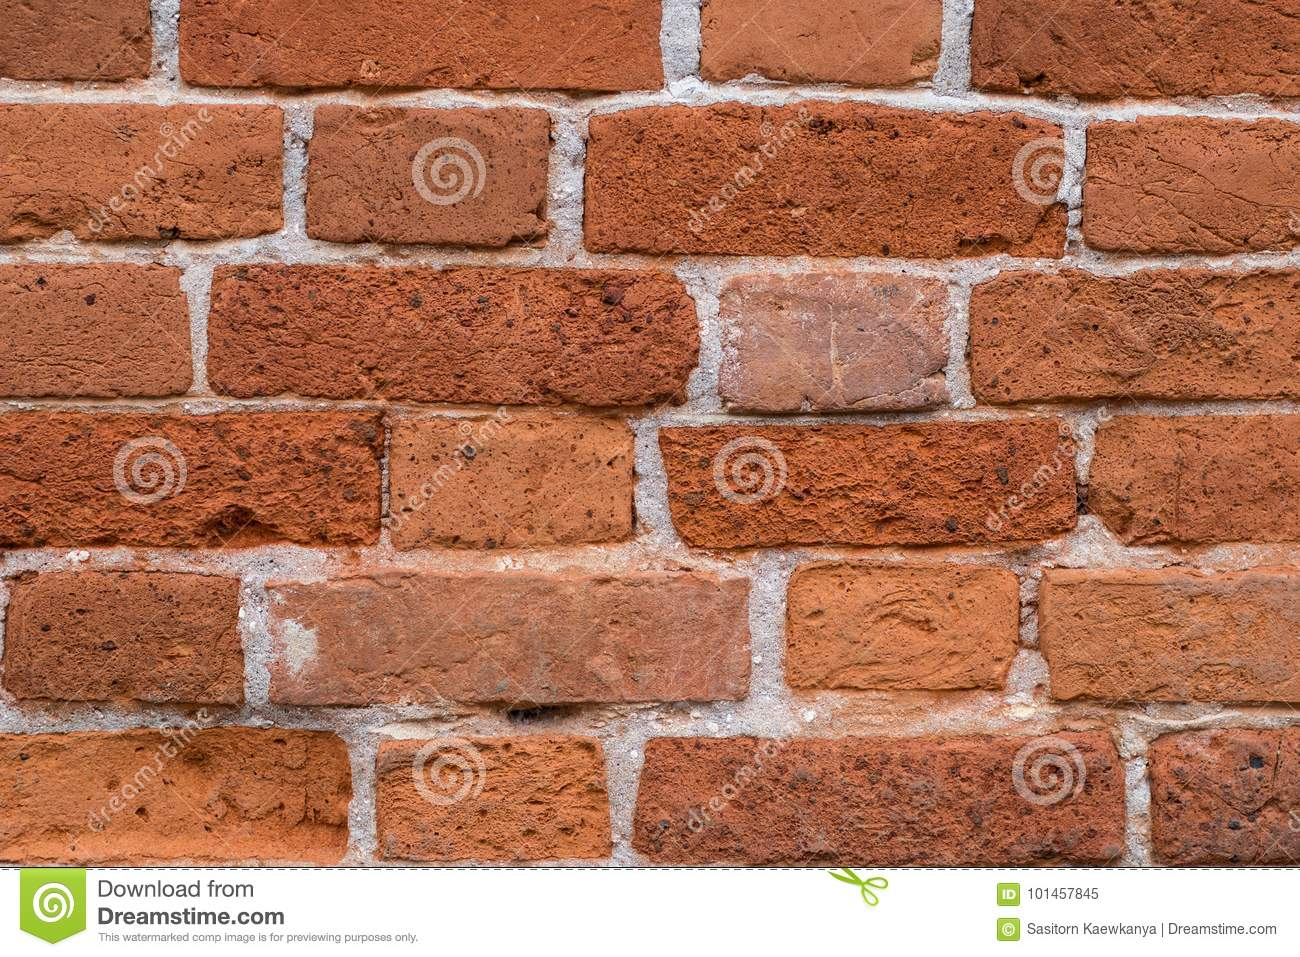 Old red brick wall texture for background.Clay bricks for building construction.